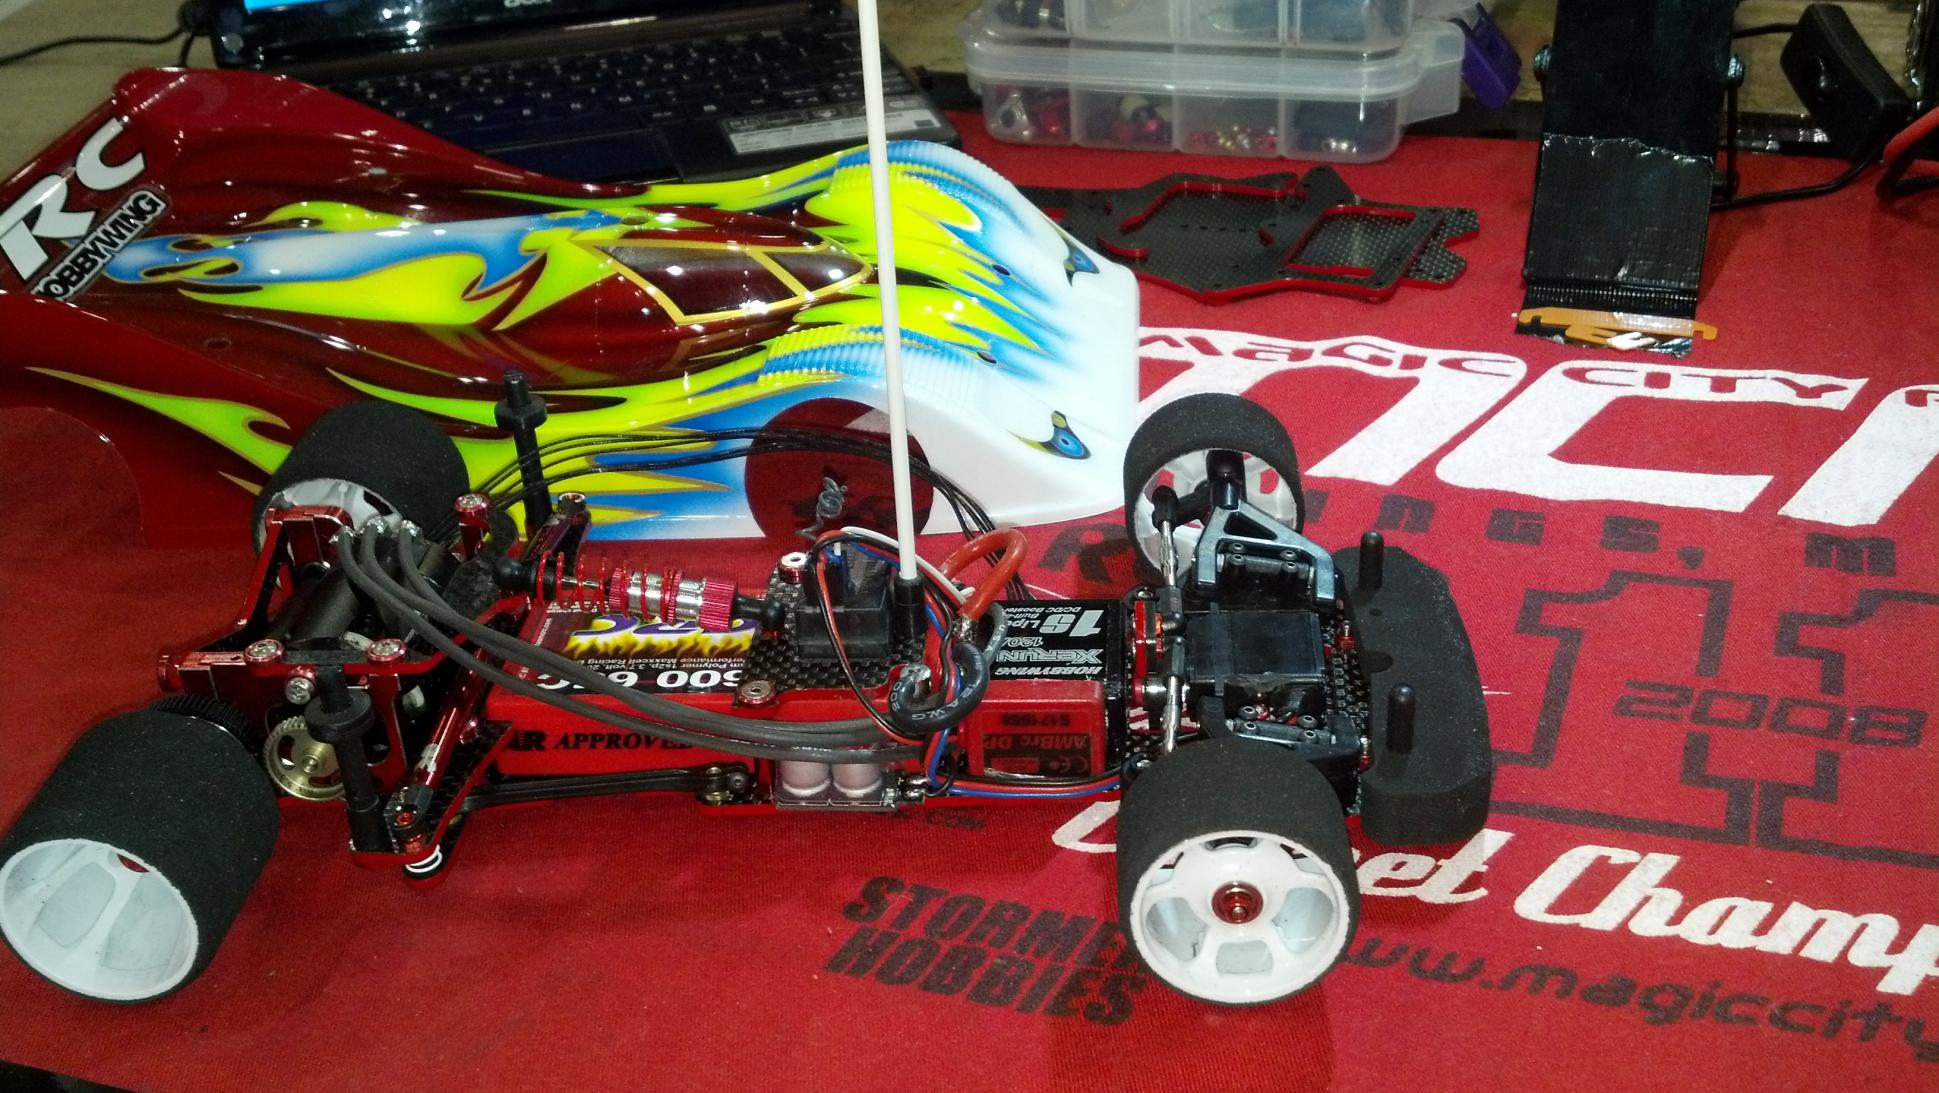 1014302d1357624869-announcing-new-team-crc-xti-1-12th-scale-2013-01-04_22-29-02_182.jpg